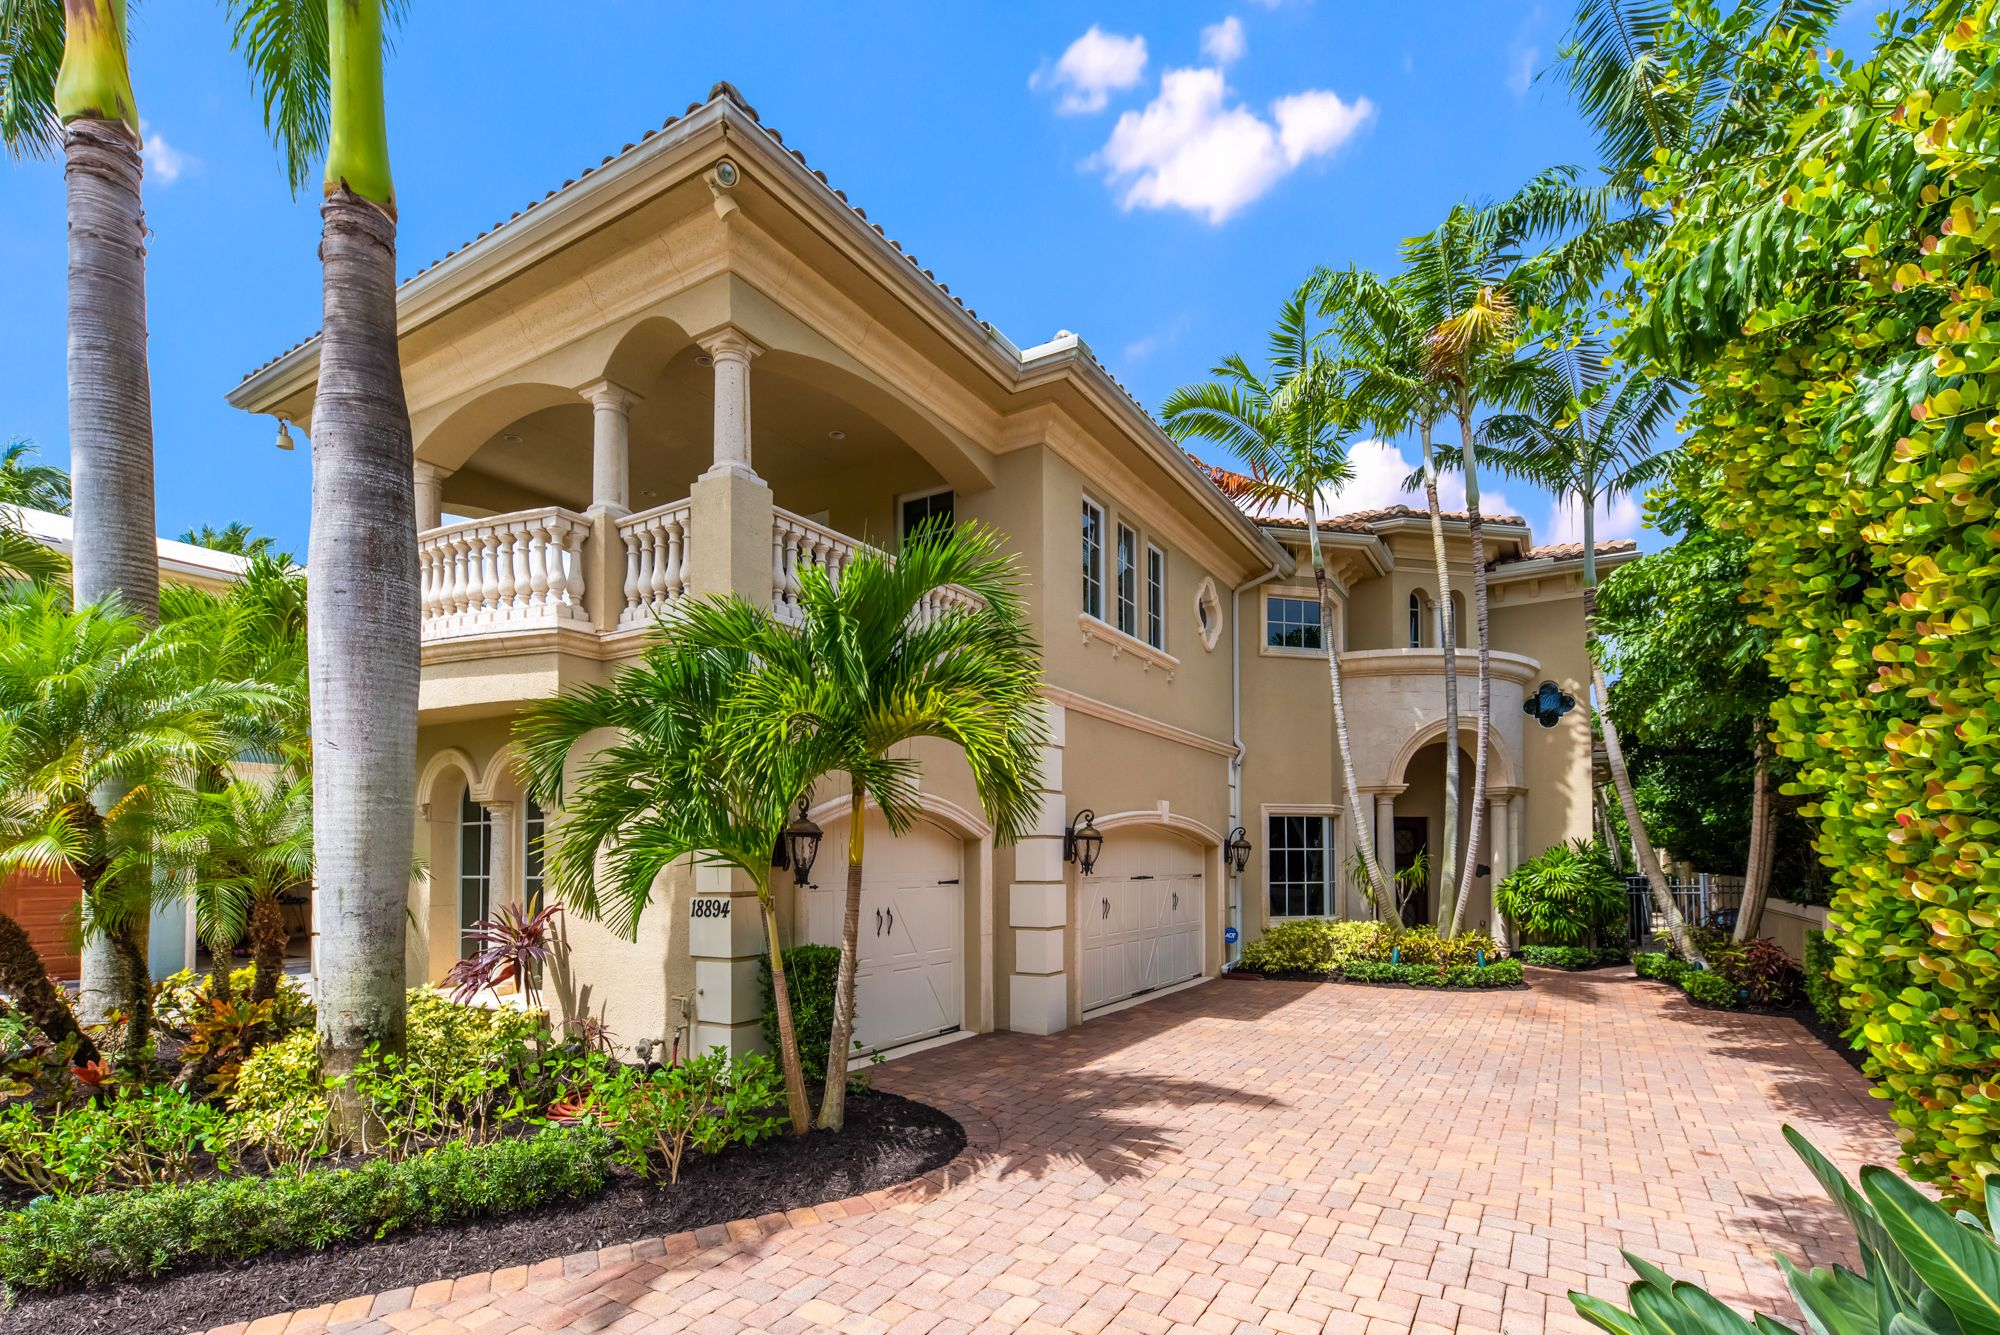 787c2867a75f4df7af1b7244eae3d496 - Illustrated Properties Real Estate Palm Beach Gardens Fl